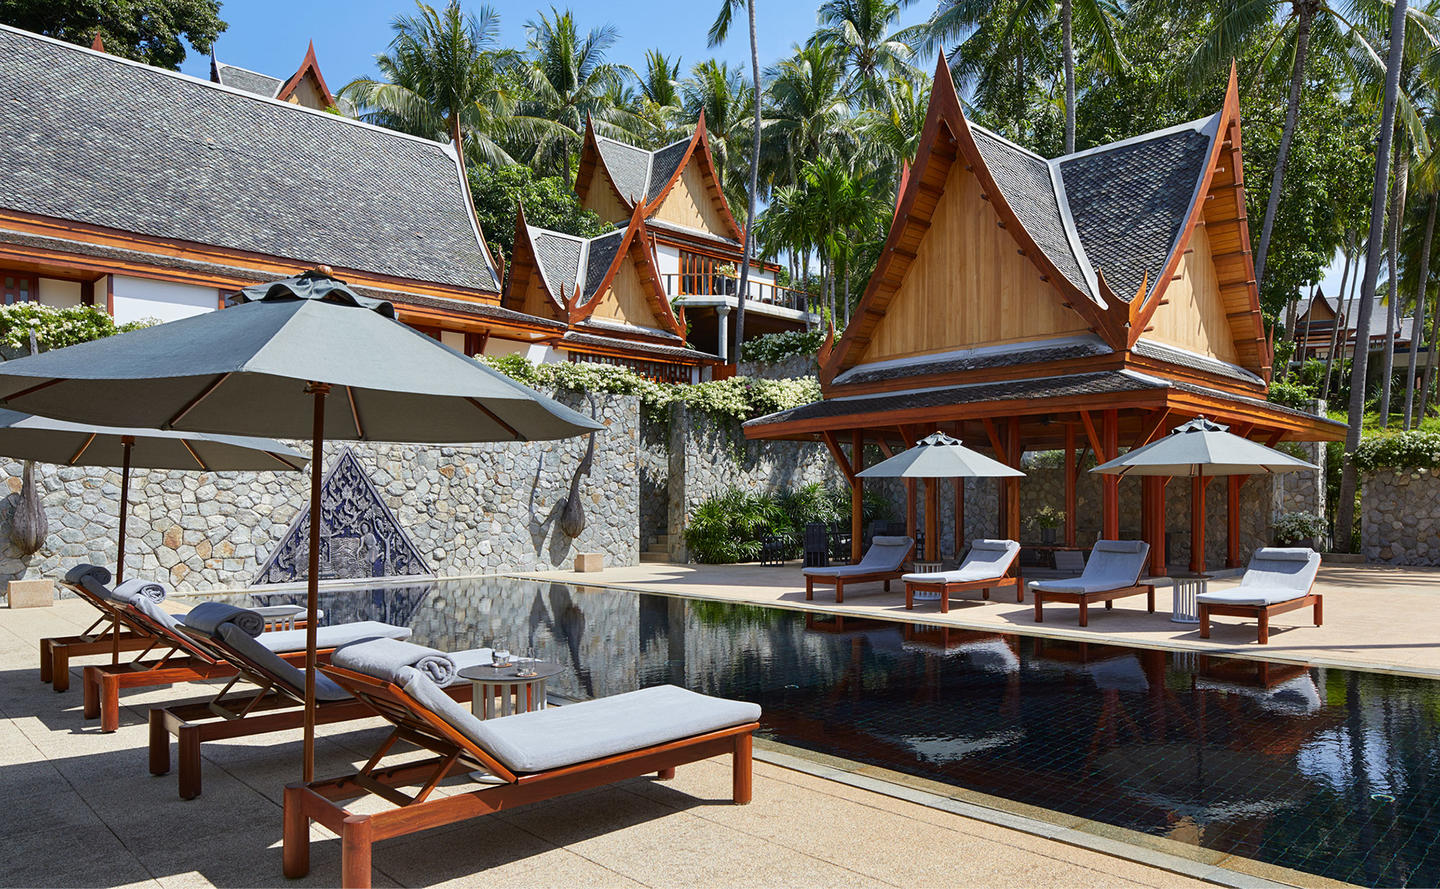 Swimming Pool & Sun Loungers, Two-Bedroom Garden Villa, Amanpuri, Thailand